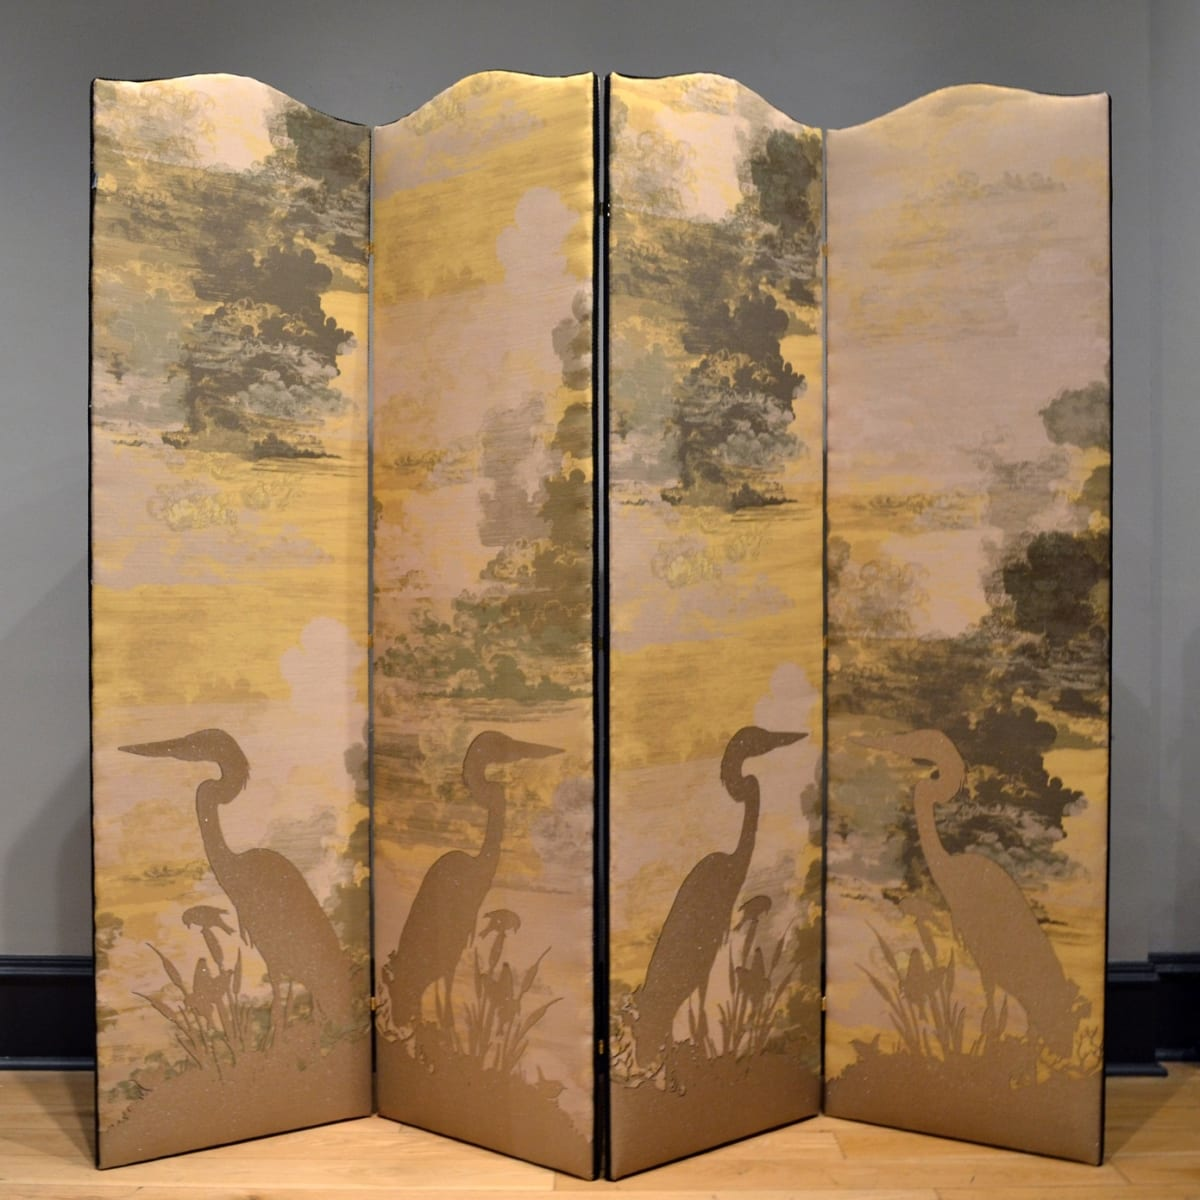 Timorous Beasties Golden Heron / Bee Eater Flock, 2019 folding screen upholstered in Cloud Toile fabric with one-off screen print design 176 x 194 cm (3 panels, 48.5 cm width each)